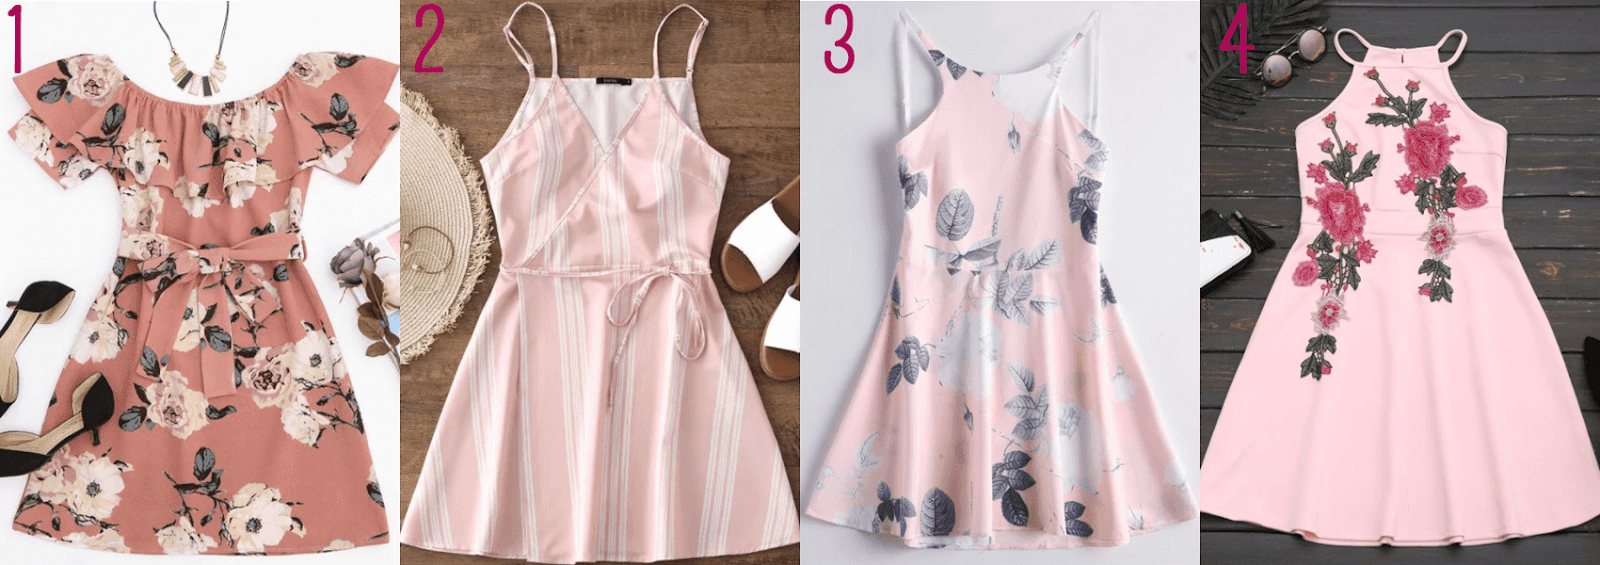 short pink dresses here zaful